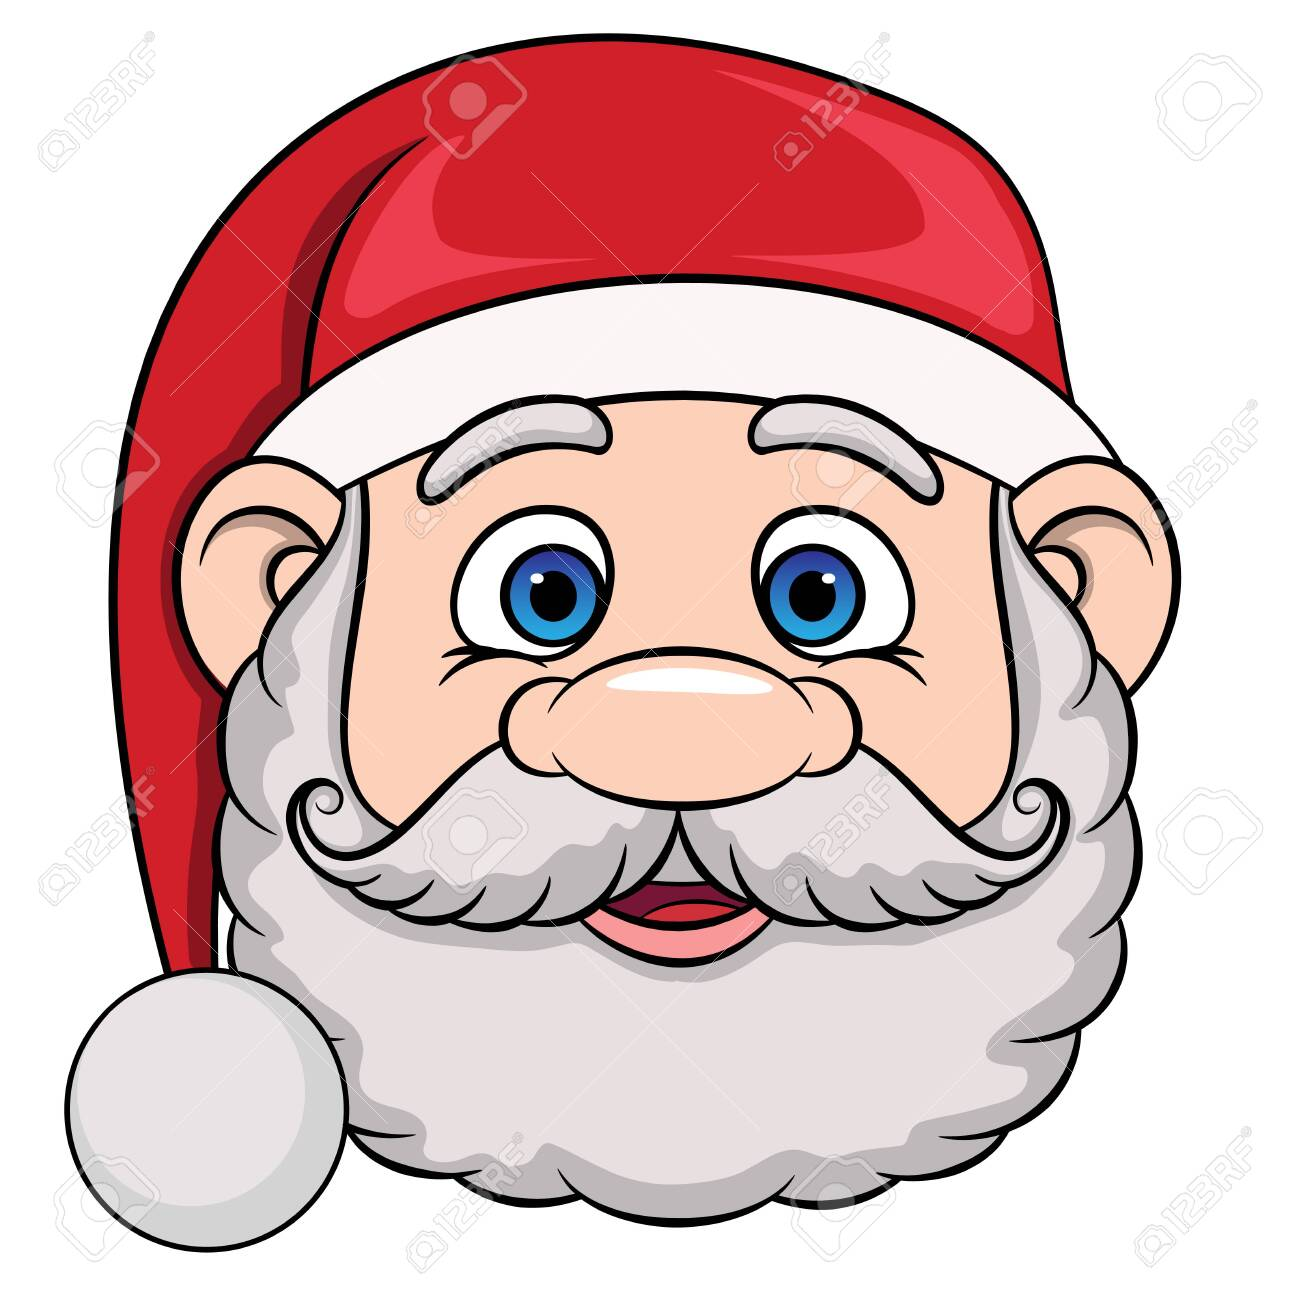 Head Of Cartoon Smiling Santa Claus In Christmas Hat Vector Royalty Free Cliparts Vectors And Stock Illustration Image 130015296